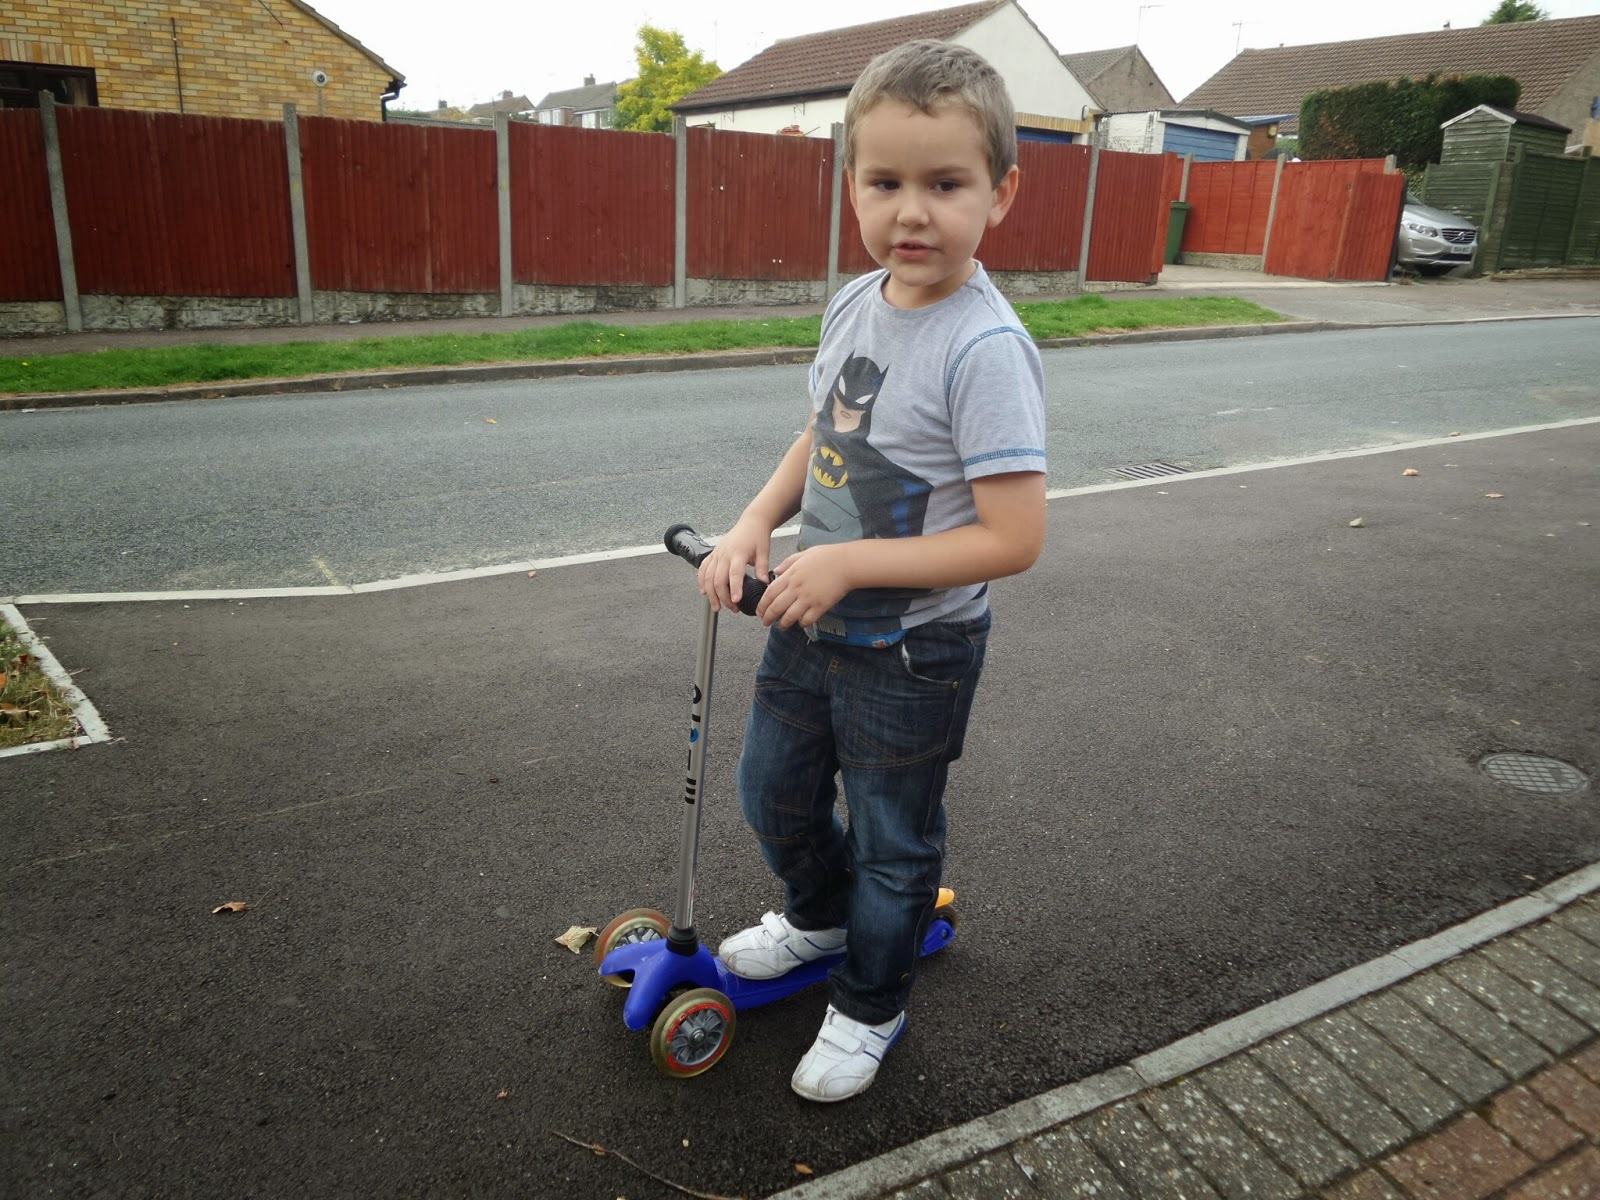 BB on his Scooter